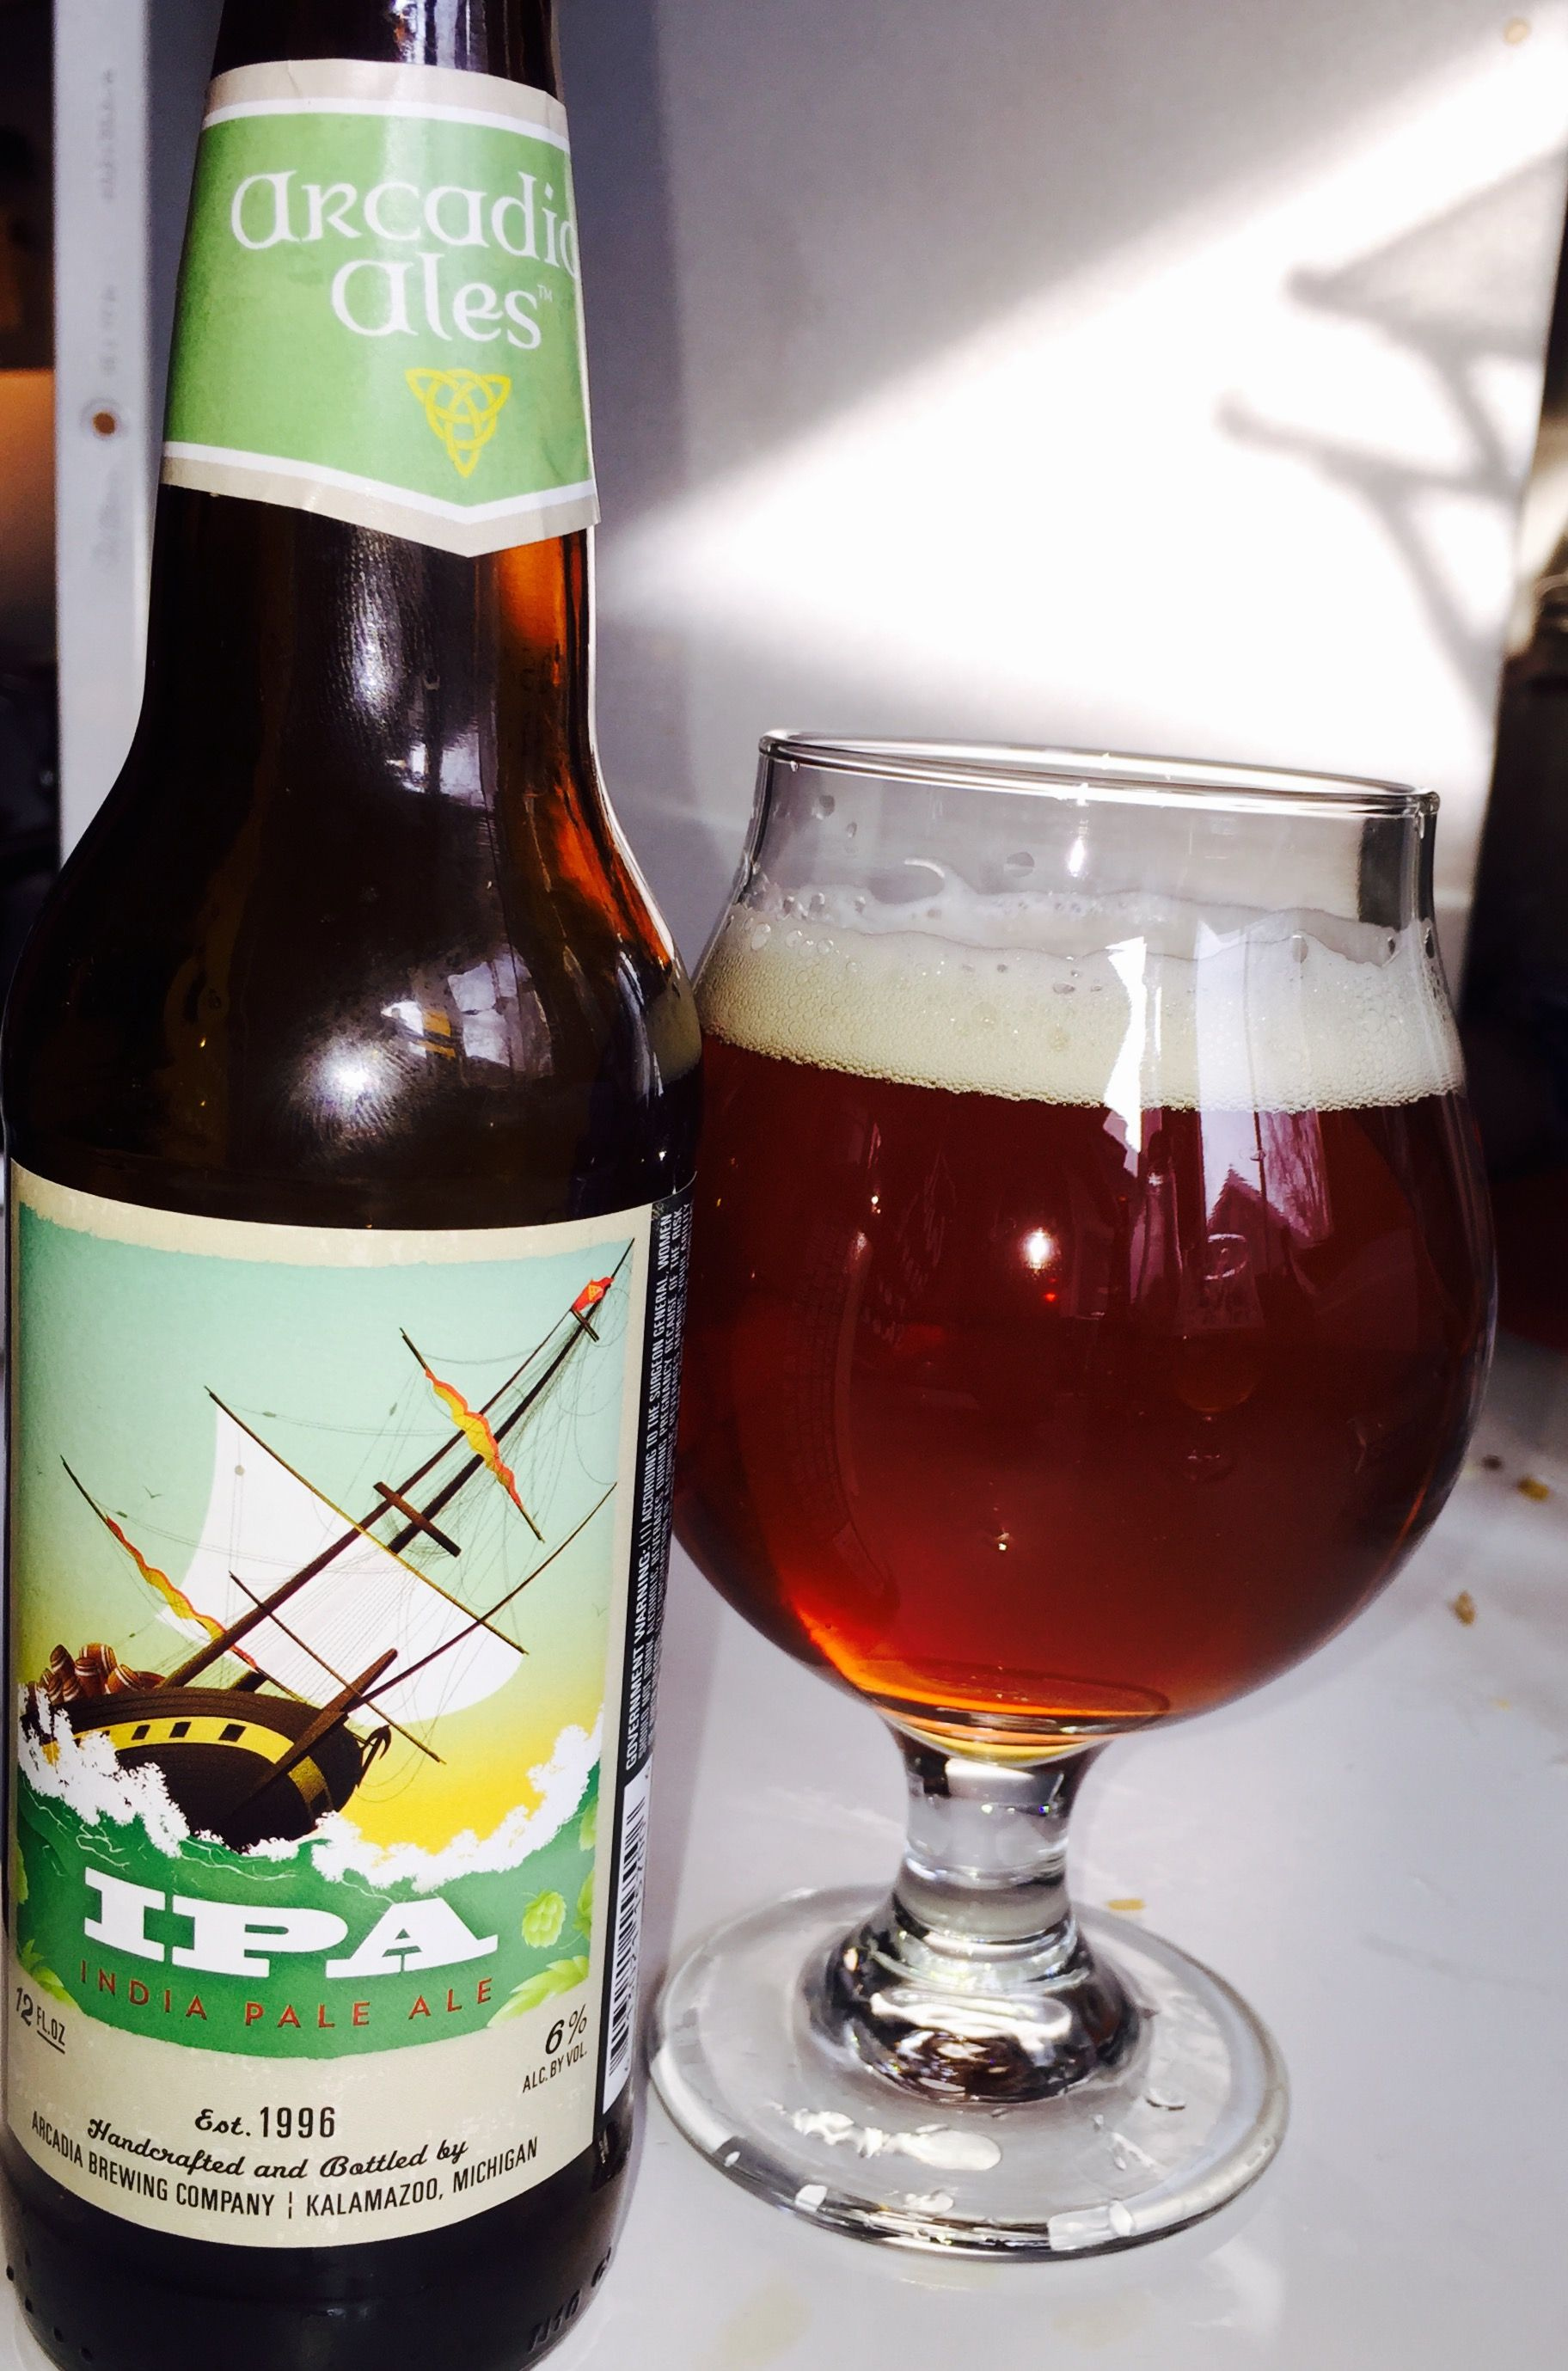 You Have To Try This One Craft Beer Ipa Craft Beer Best Beer Local Beer